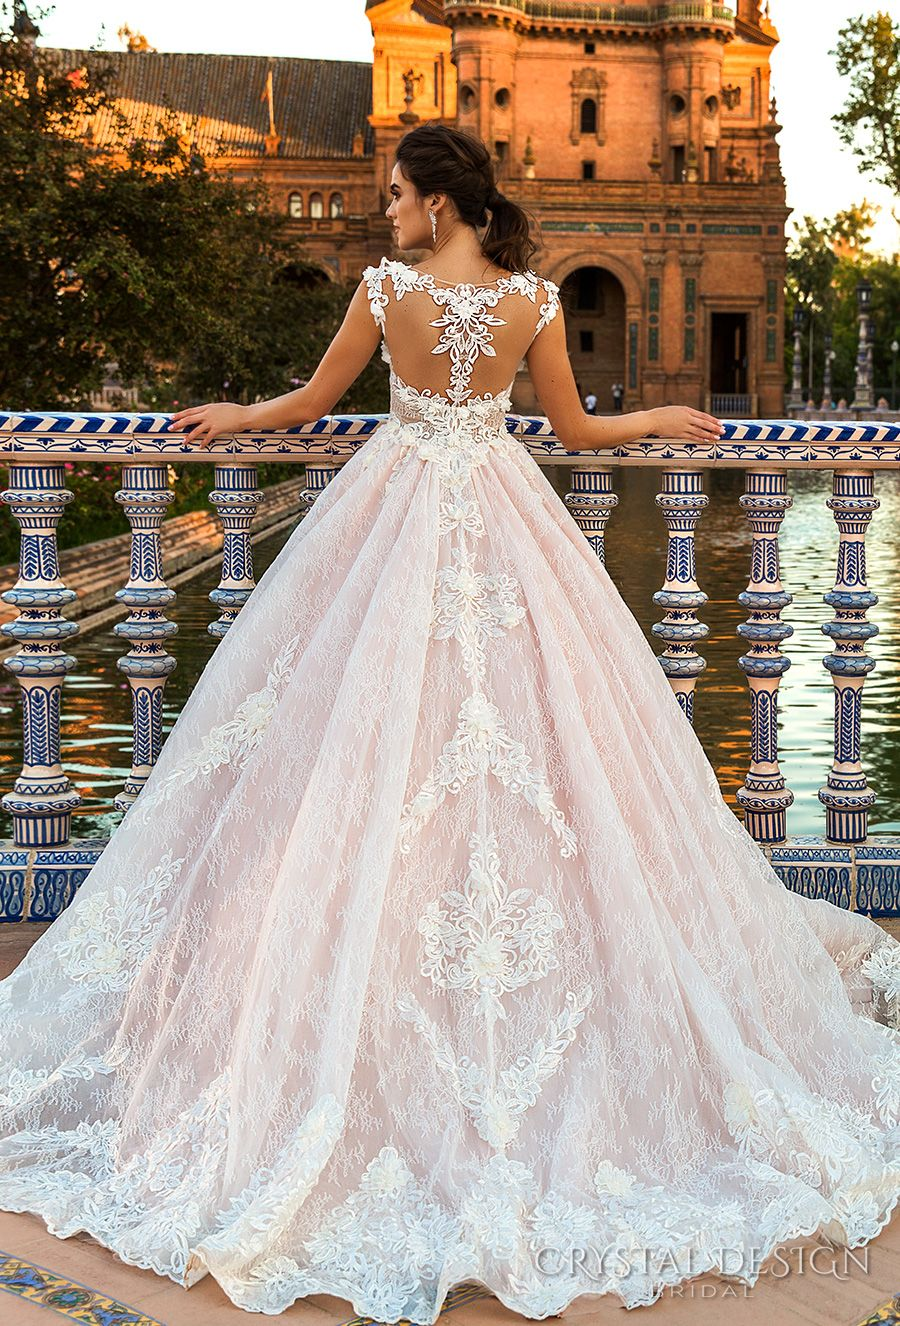 ff58a8c319bb0 Crystal Design 2017 bridal sleeveless illusion boat sweetheart neckline  full embellishment pink lace princess ball gown a line wedding dress lace  back ...